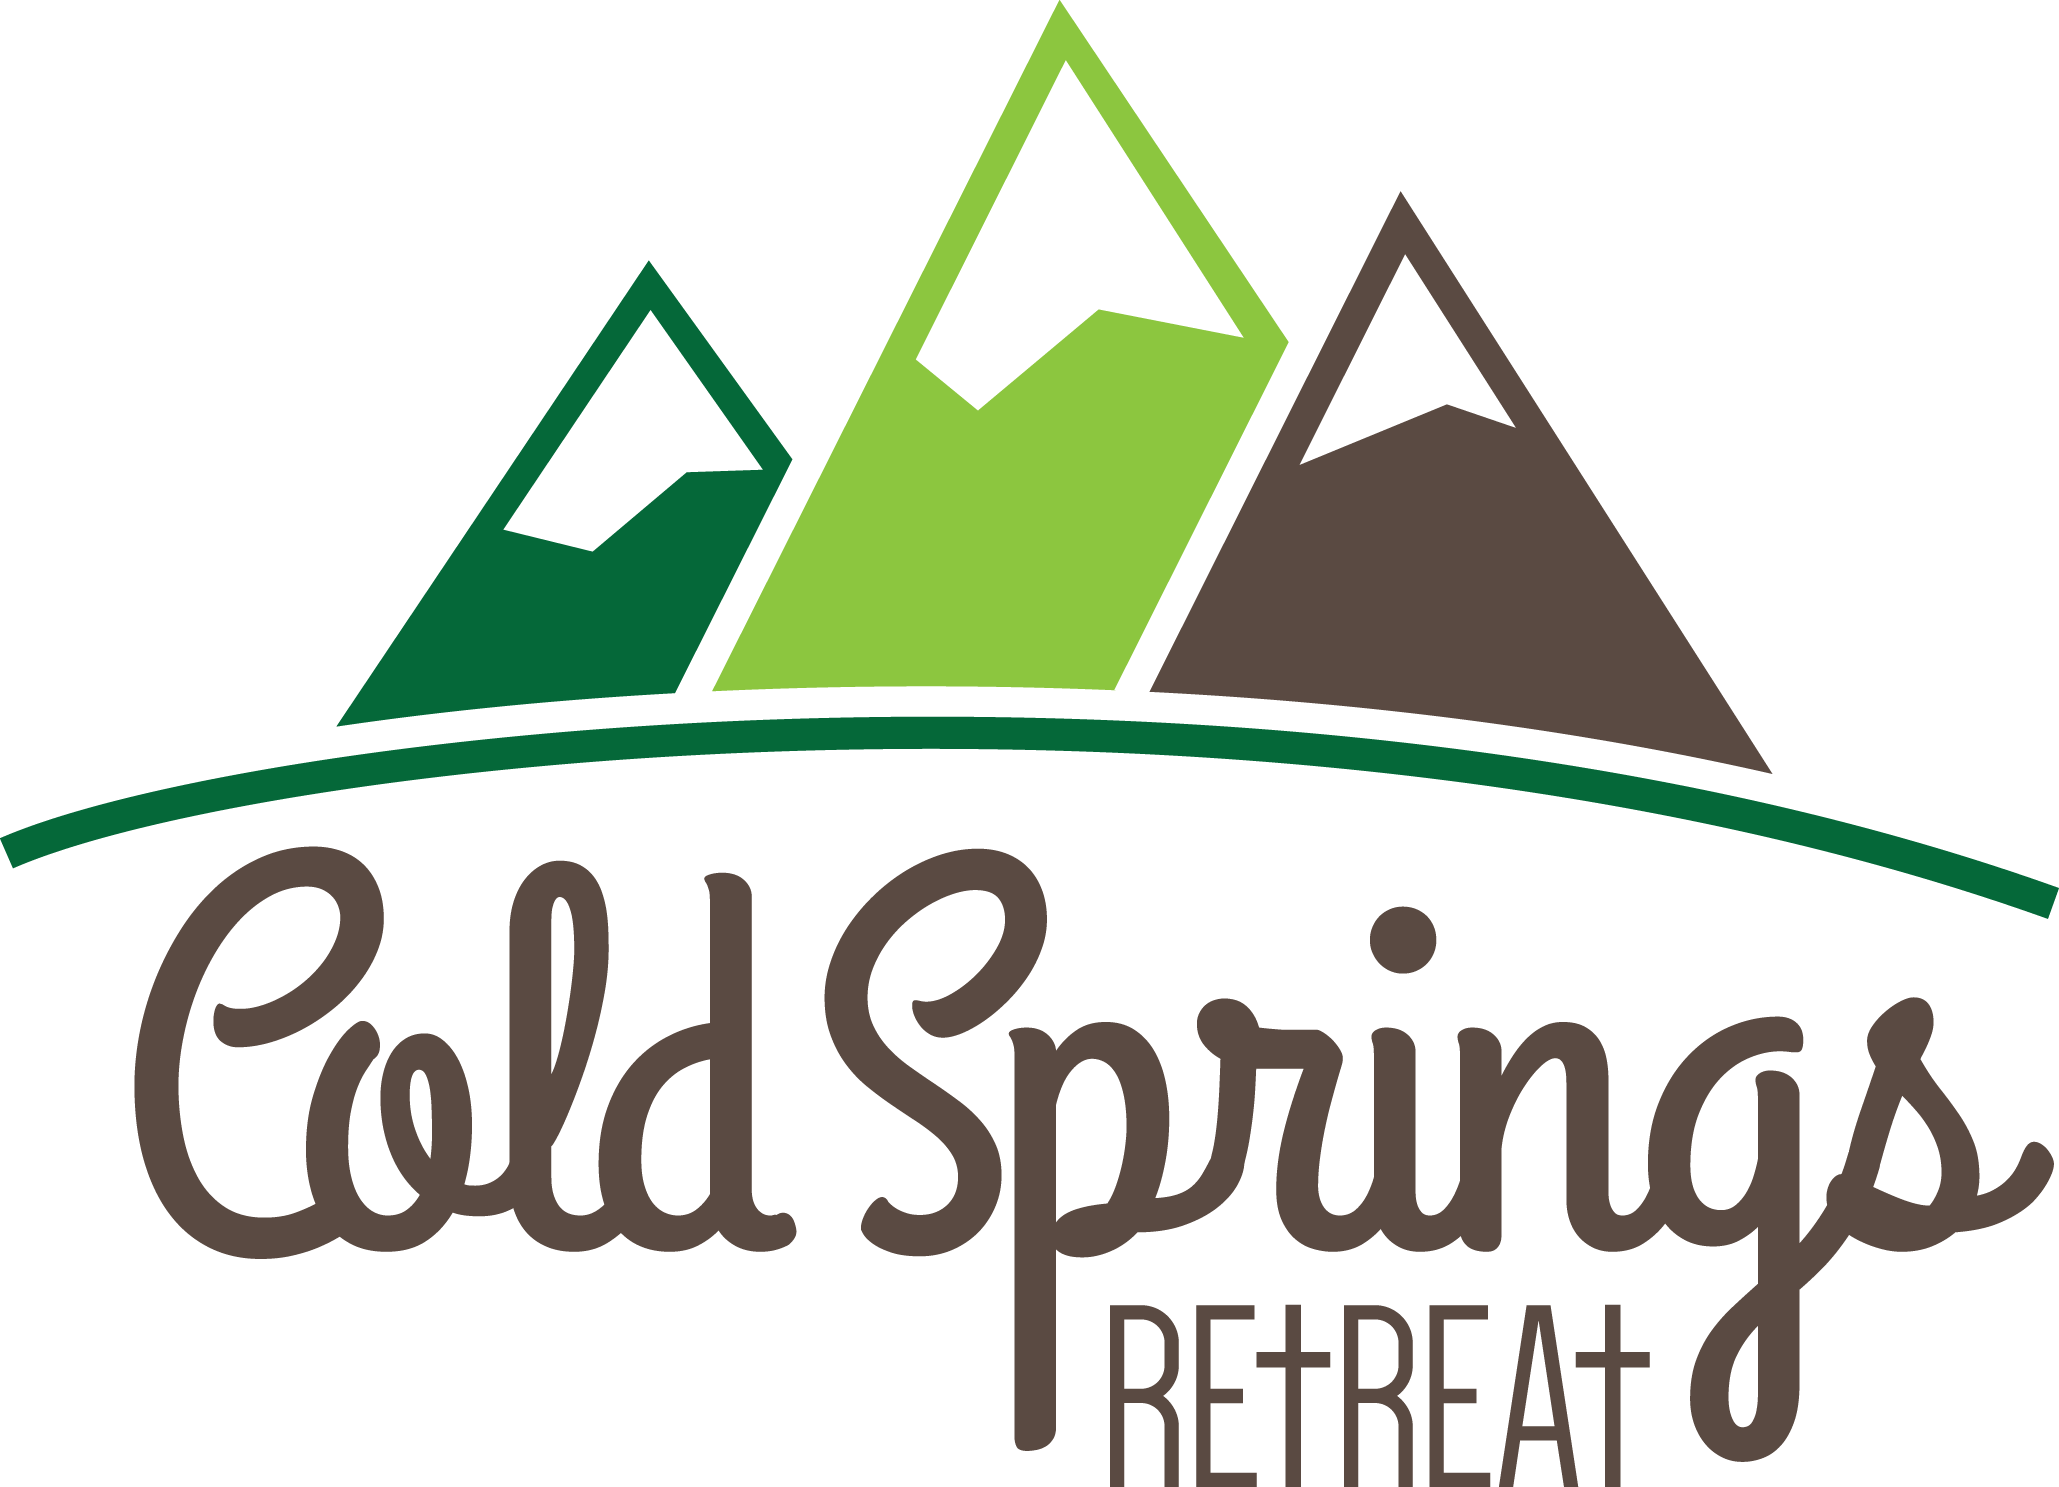 Cold Springs Retreat